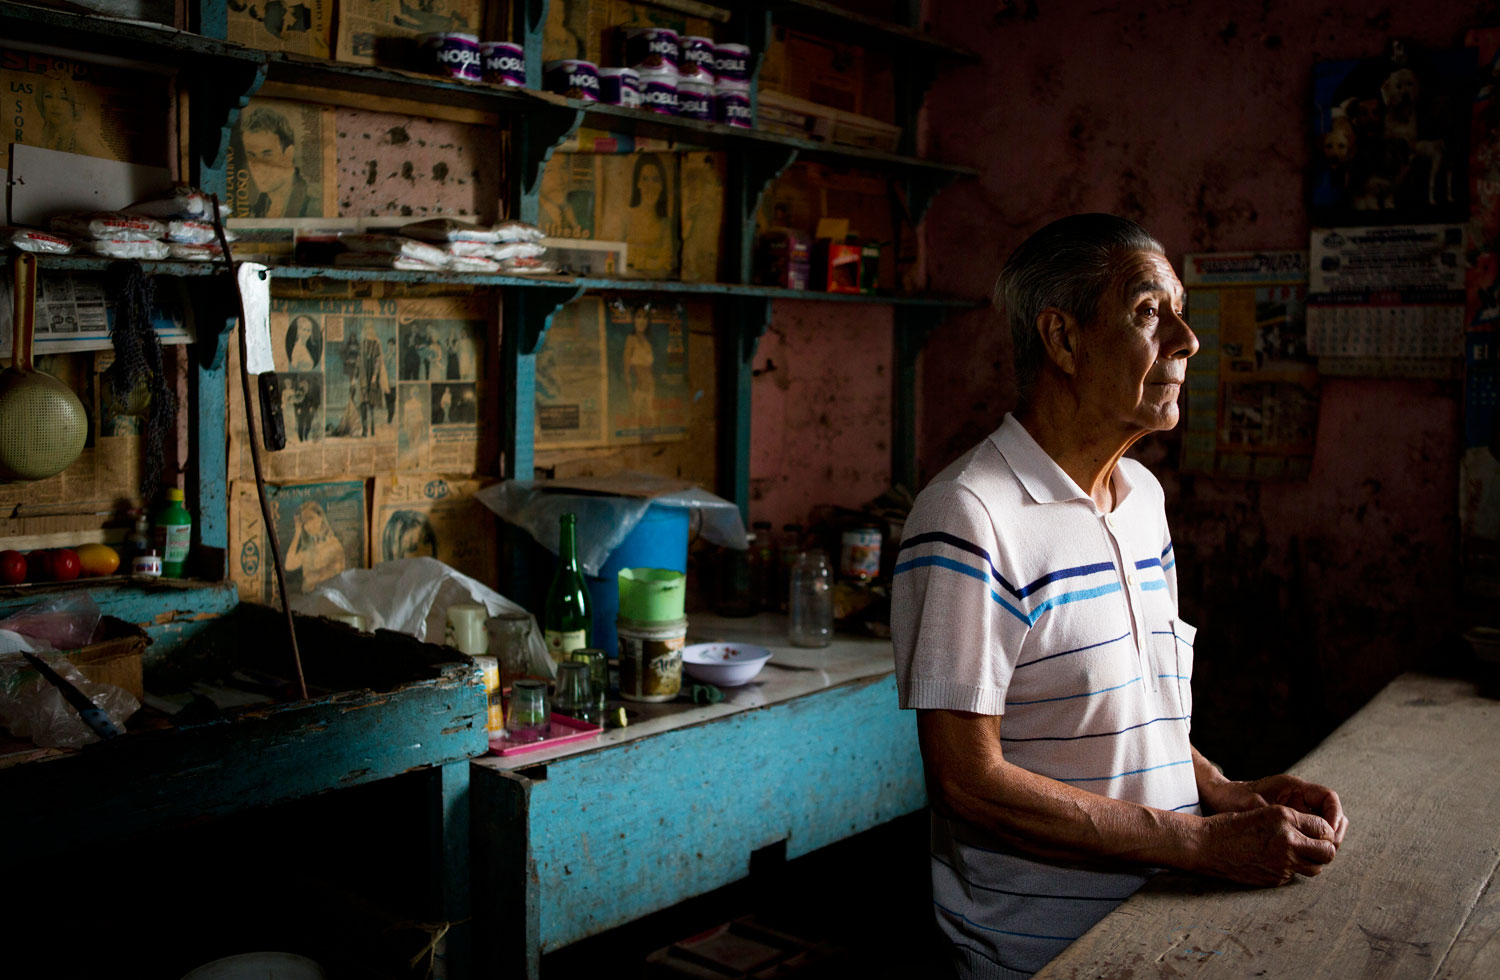 Adriano Leon Bardales has lived in El Ayllu, where he runs a general store, for 46 years. He will move to a nearby neighborhood where he has found a house to rent with space to open another store.